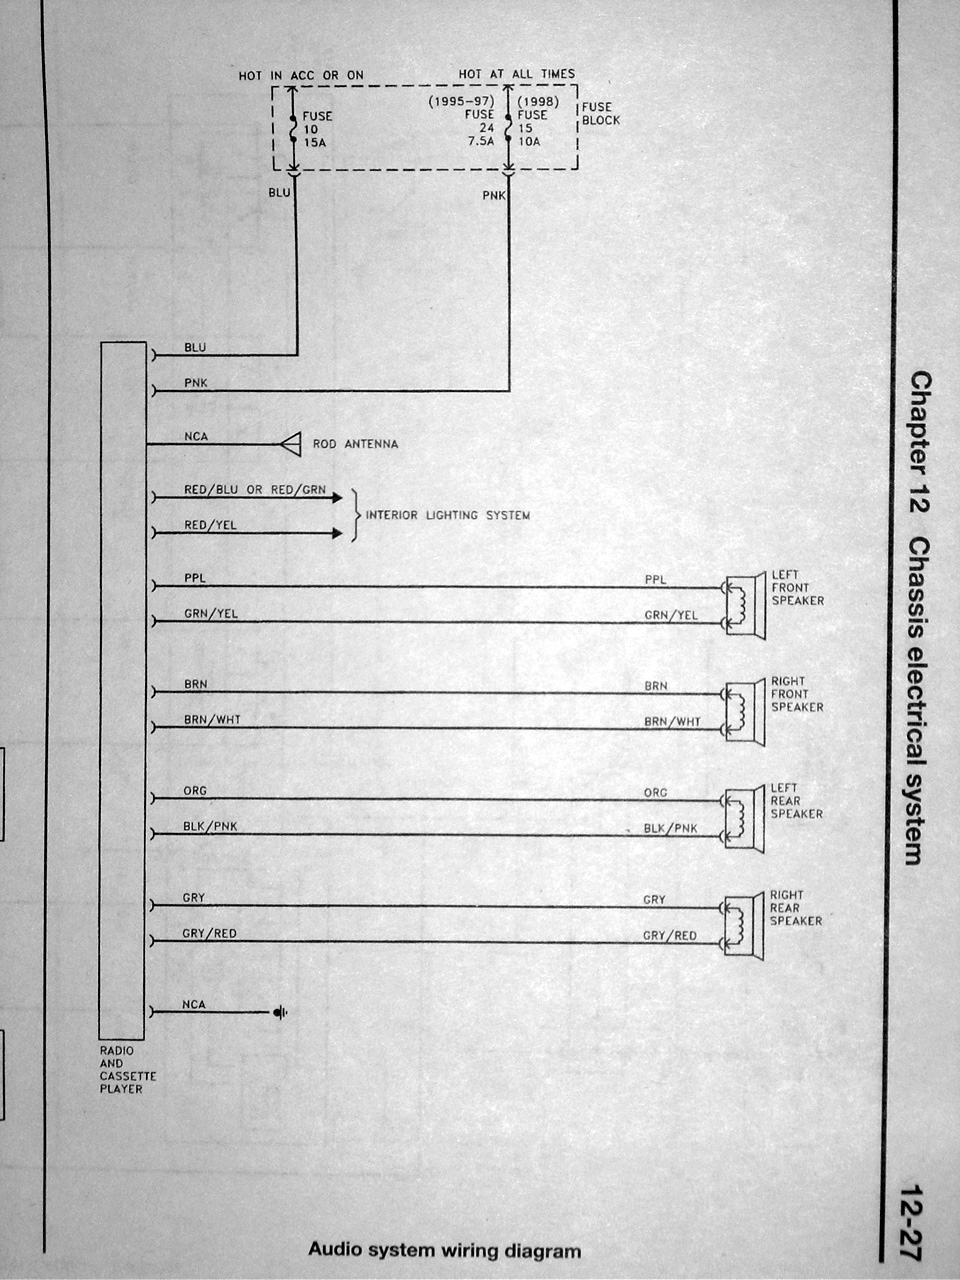 DSC01849 wiring diagram thread *useful info* nissan forum 2005 nissan 350z headlight wiring diagram at arjmand.co